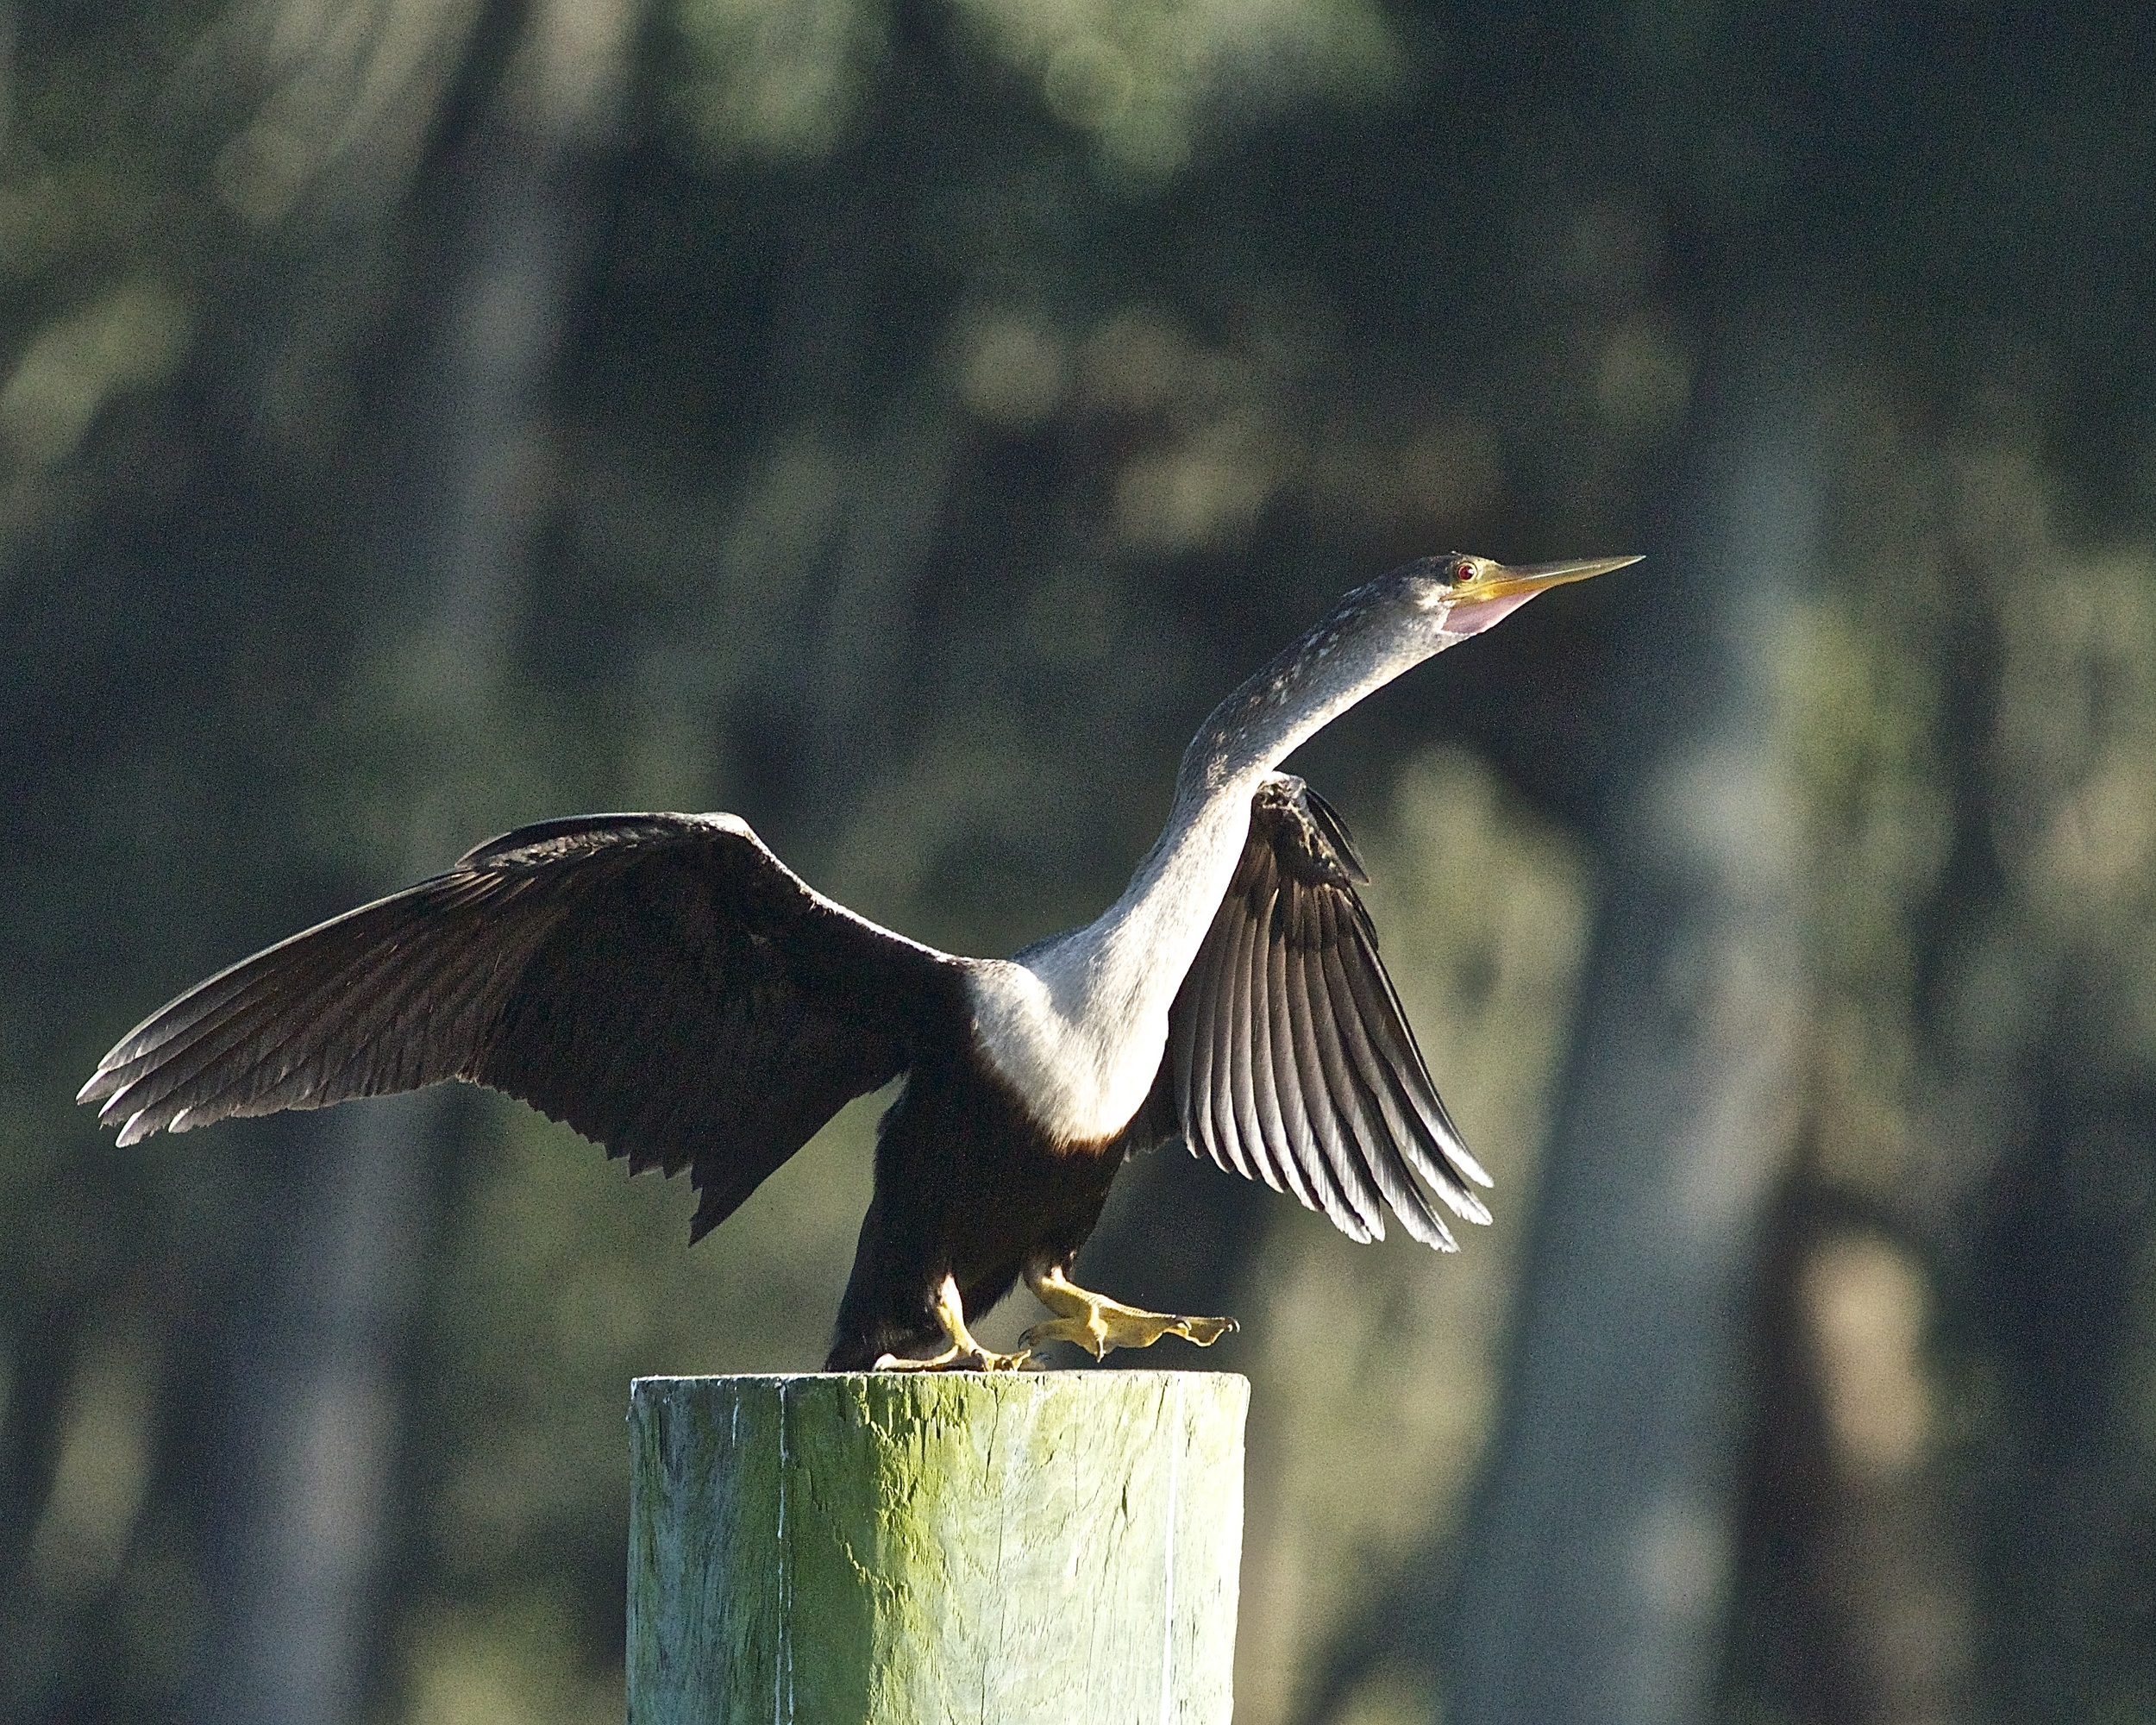 Female Anhinga about to fly.